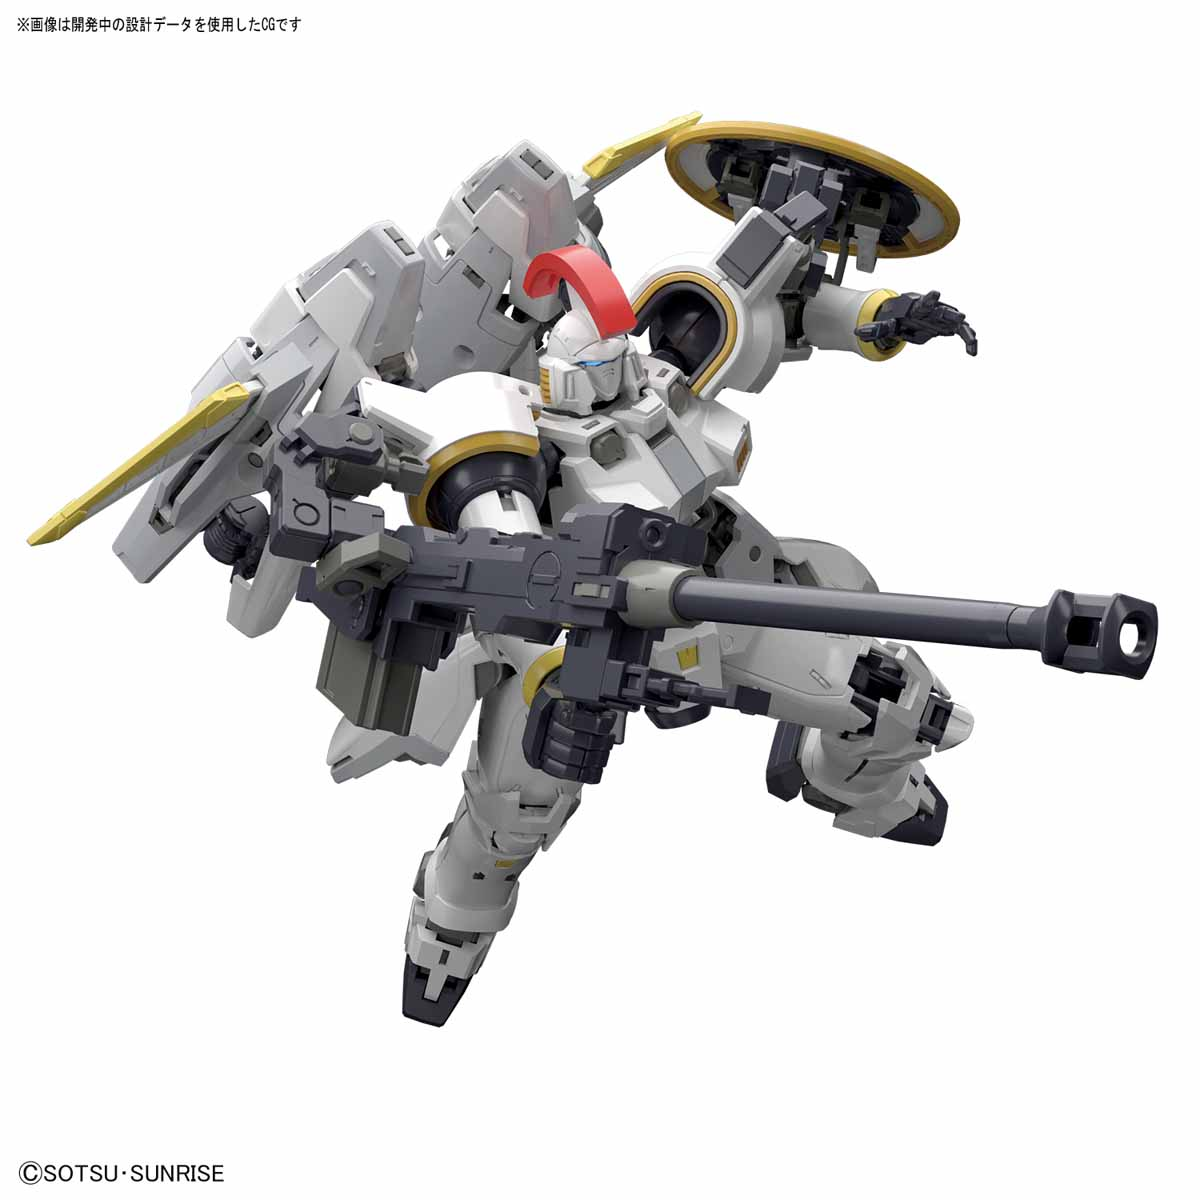 RG #28 1/144 Tallgeese I EW - Release Info - Gundam Kits Collection News and Reviews